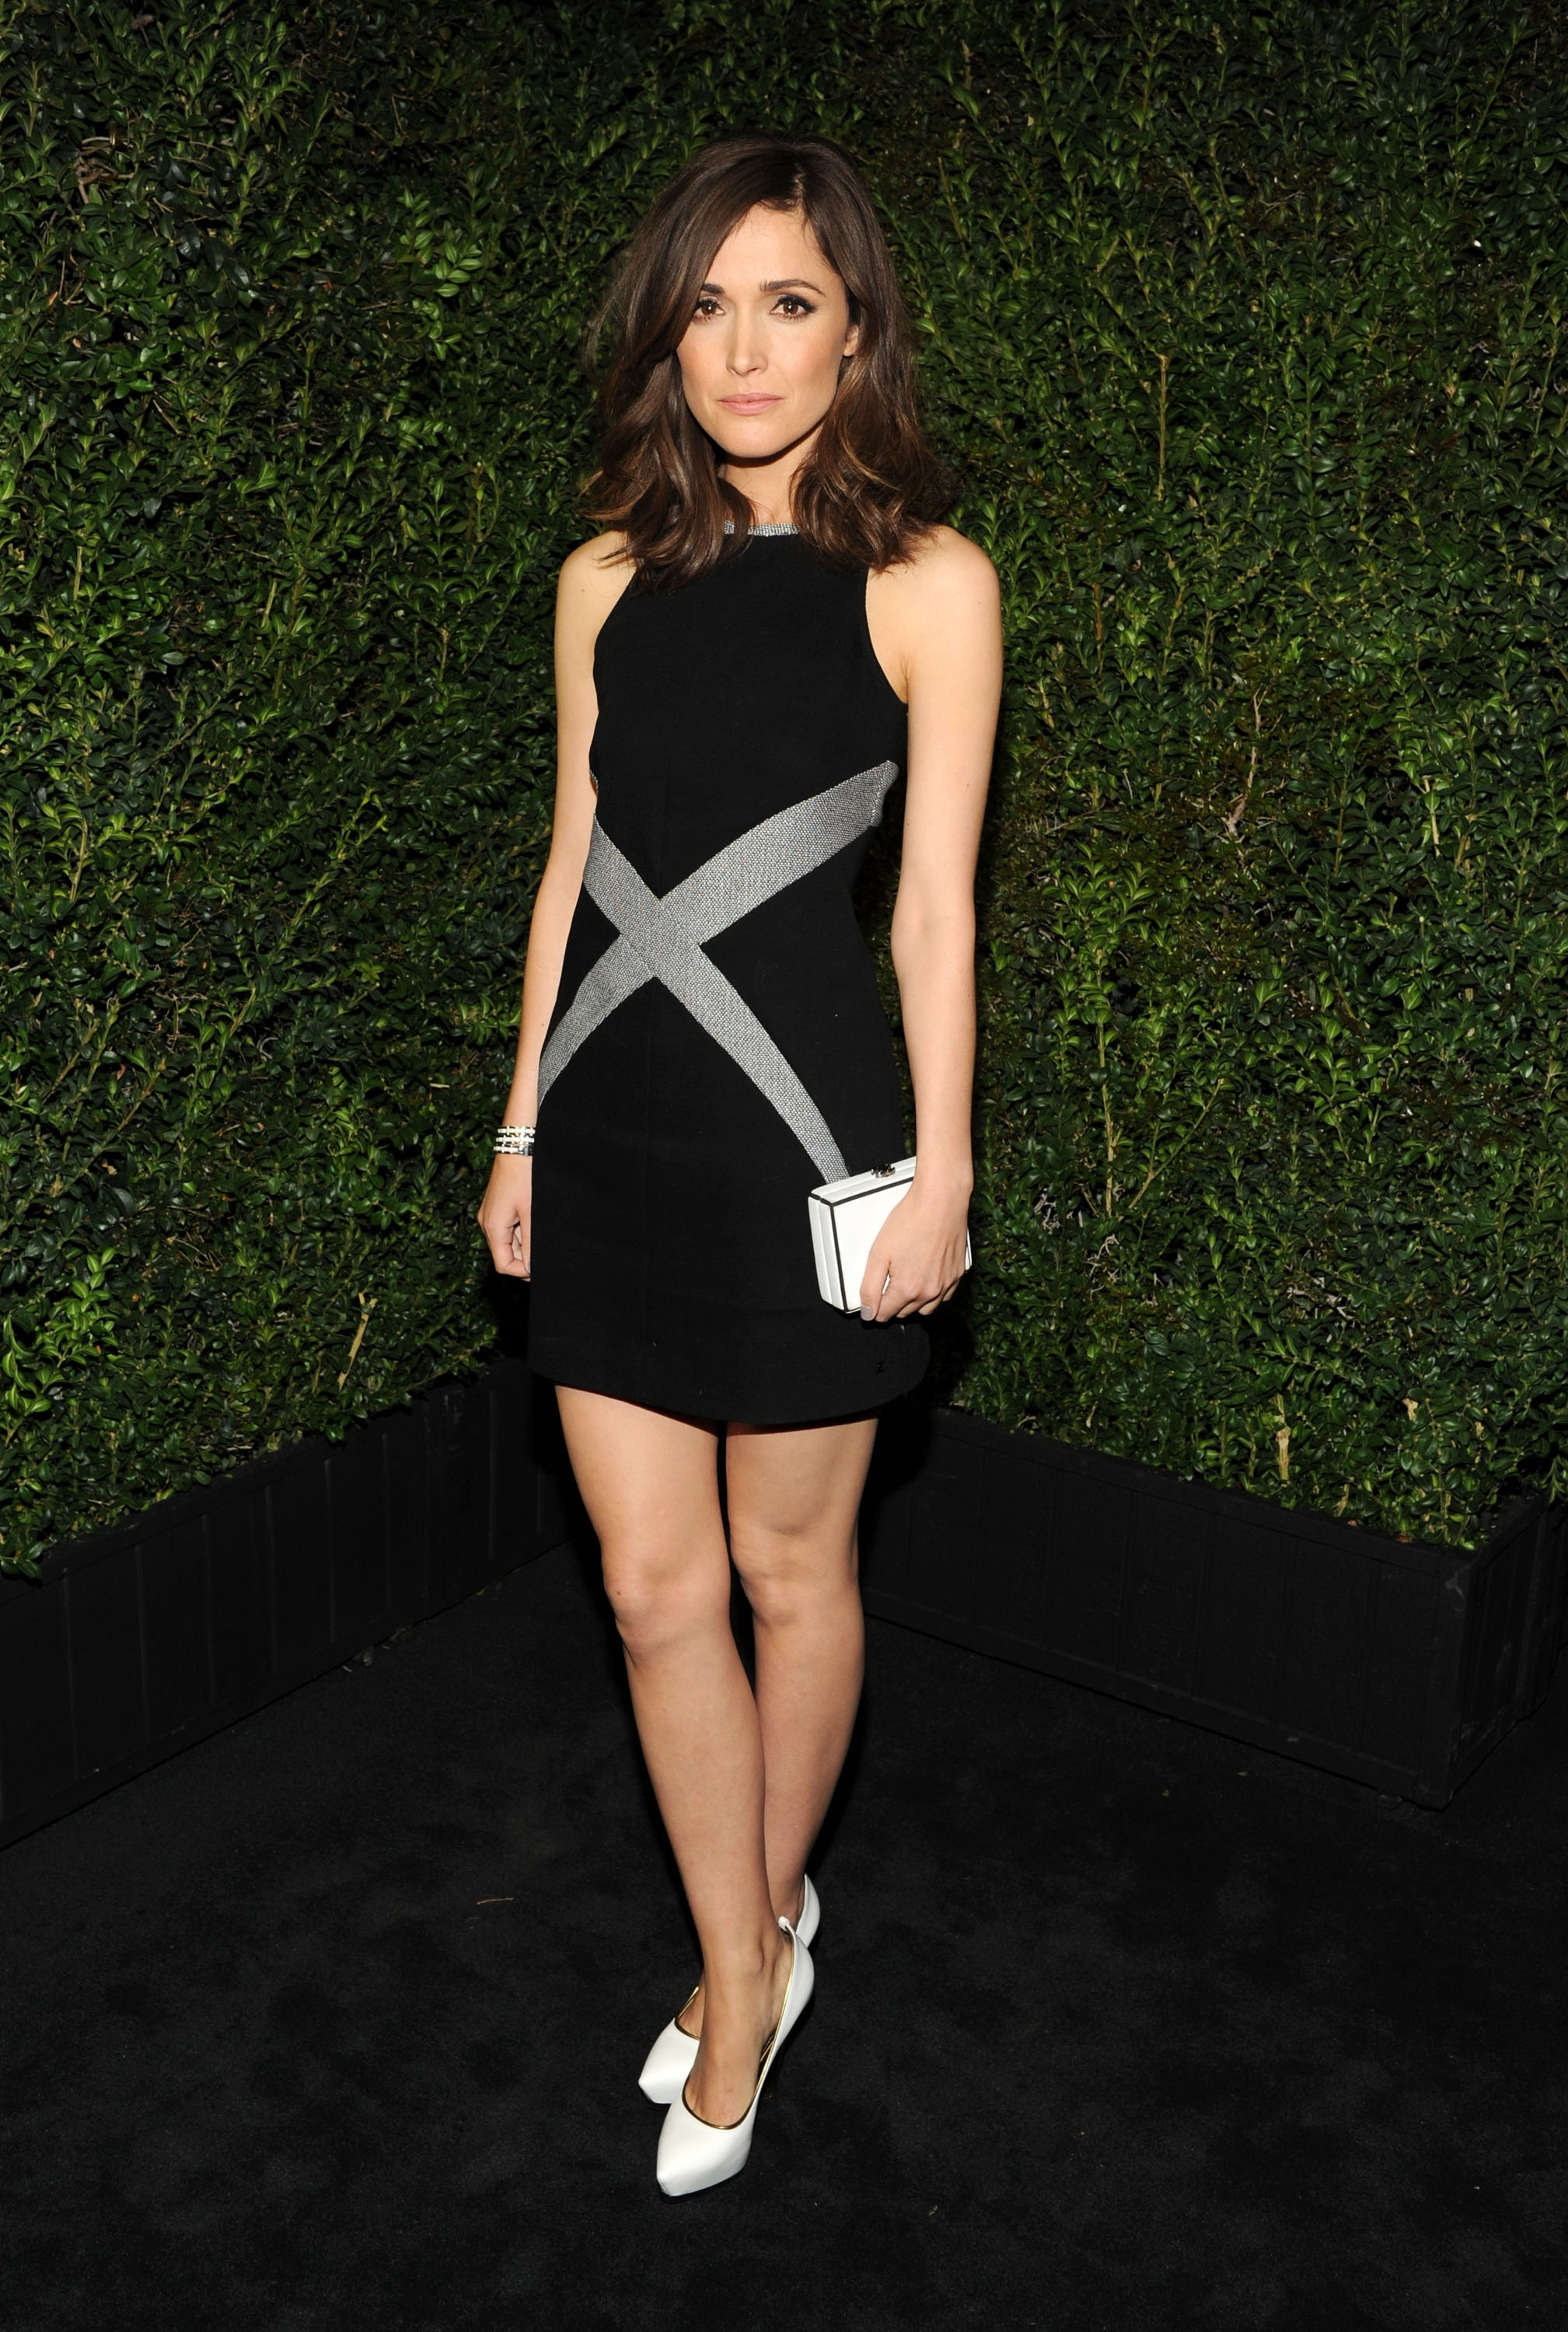 LOS ANGELES, CA - FEBRUARY 23: Rose Byrne attends the Chanel Pre-Oscar dinner at Madeo Restaurant on February 23, 2013 in Los Angeles, California. (Photo by Craig Barritt/Getty Images for Chanel)